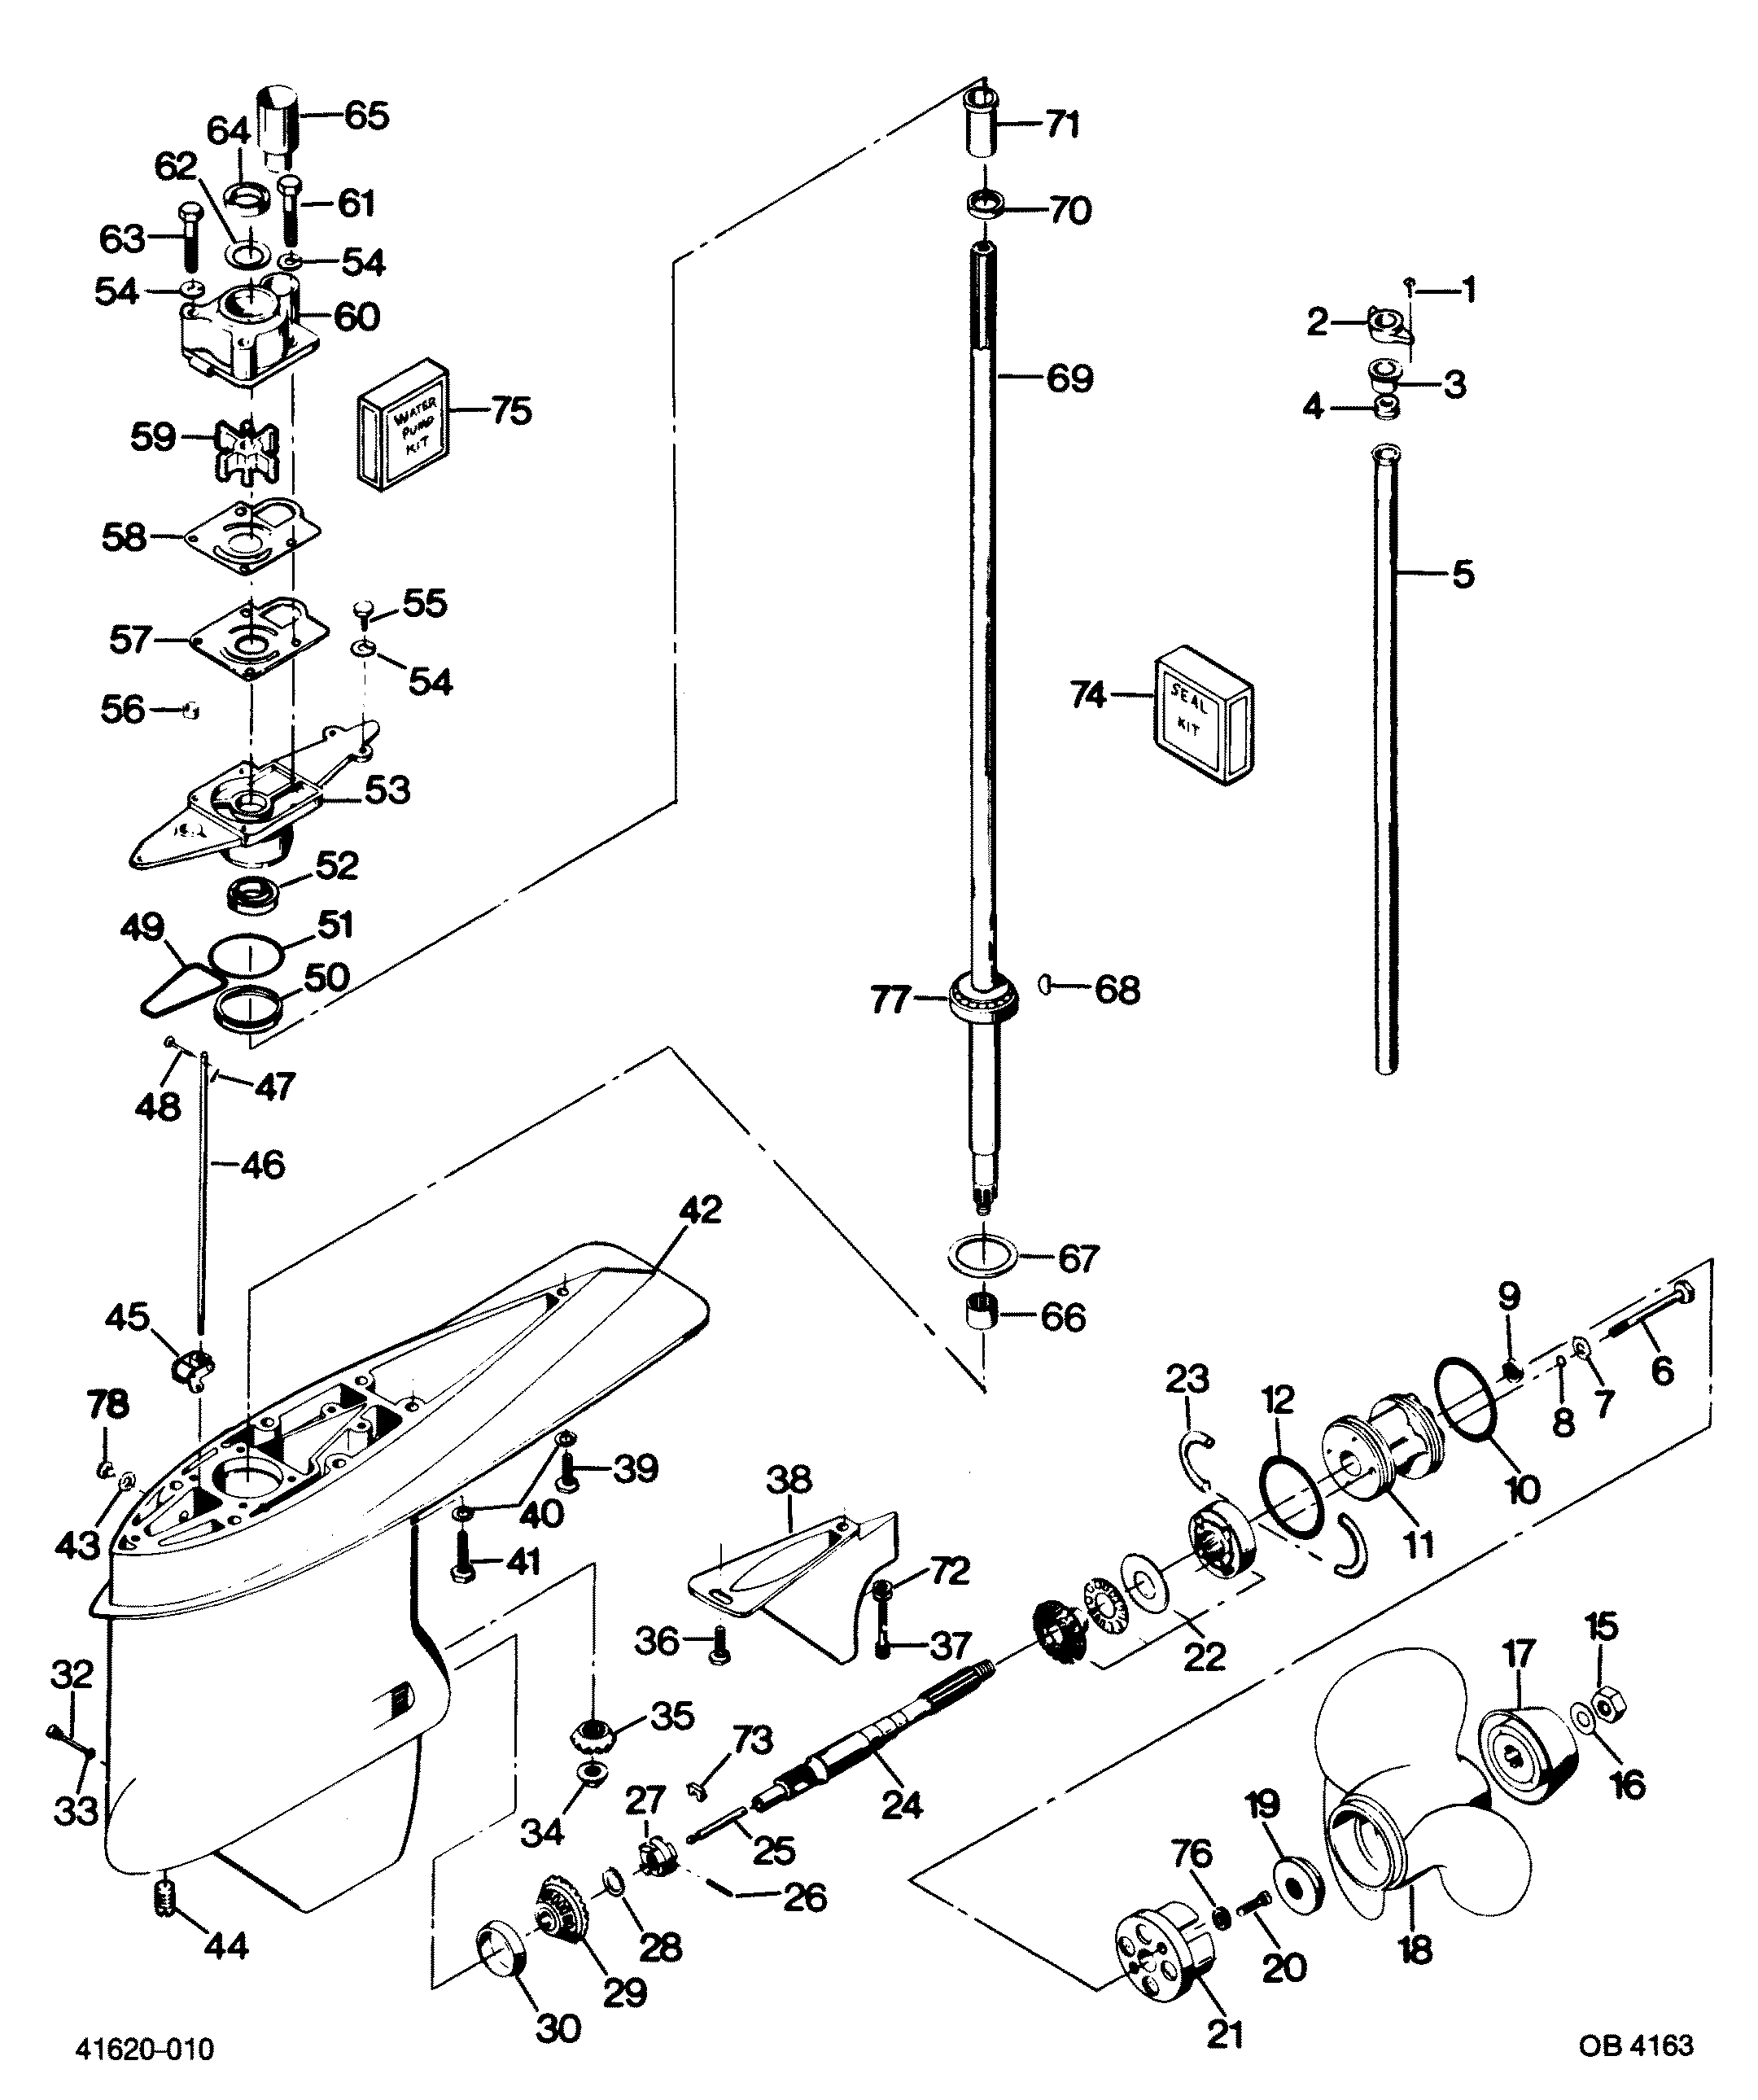 mercury force motor wiring diagram page 5 wiring diagram and hp piping diagram manual source · mercury force 125 h p 1987 1251x7b gear housing mercury rh vansoutboardparts com force 125 outboard motor